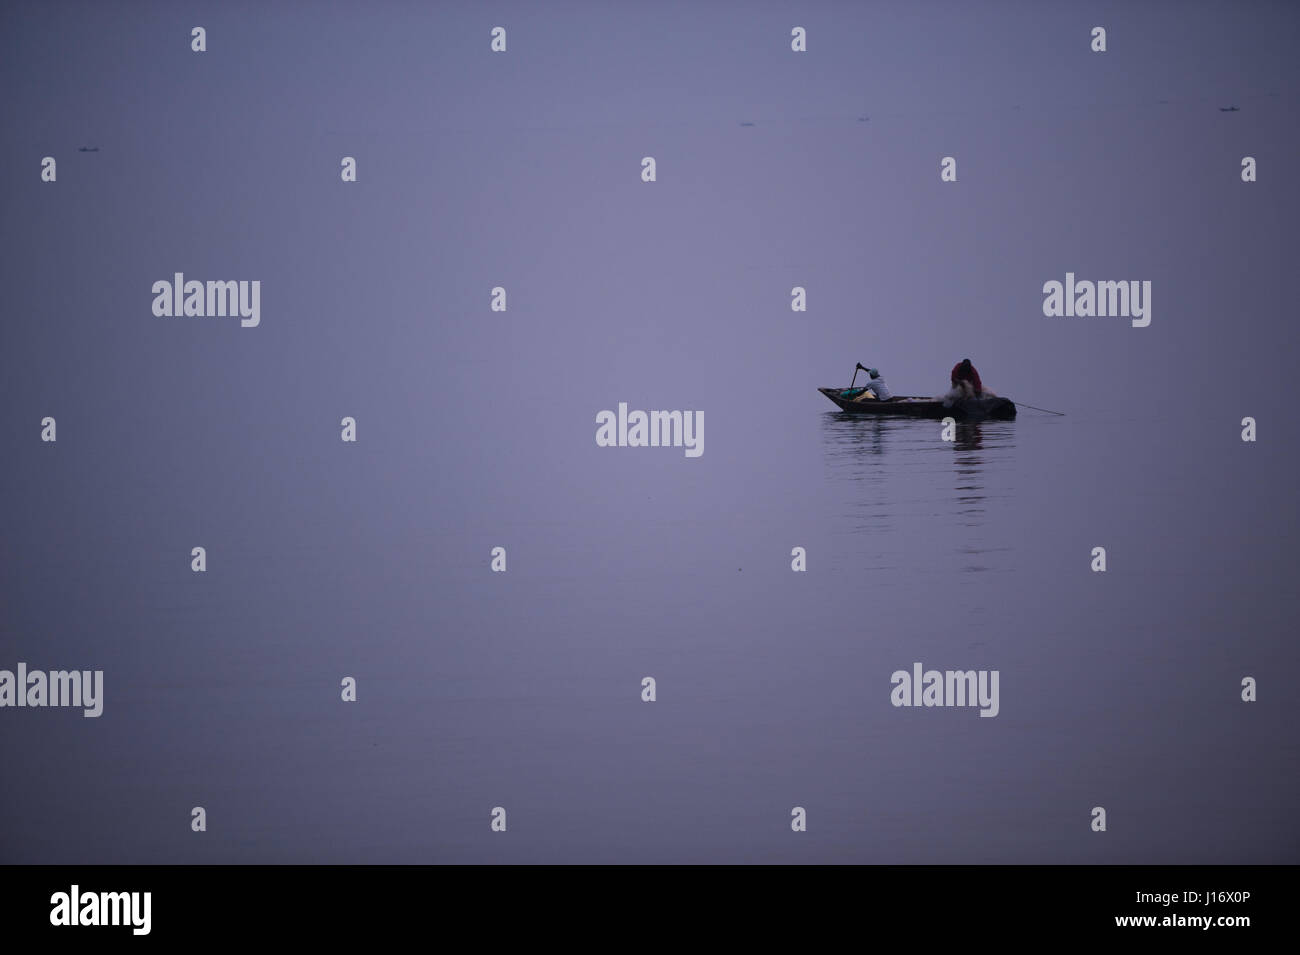 Night fishing on Lake Kivu, Goma, Democratic Republic of Congo - Stock Image